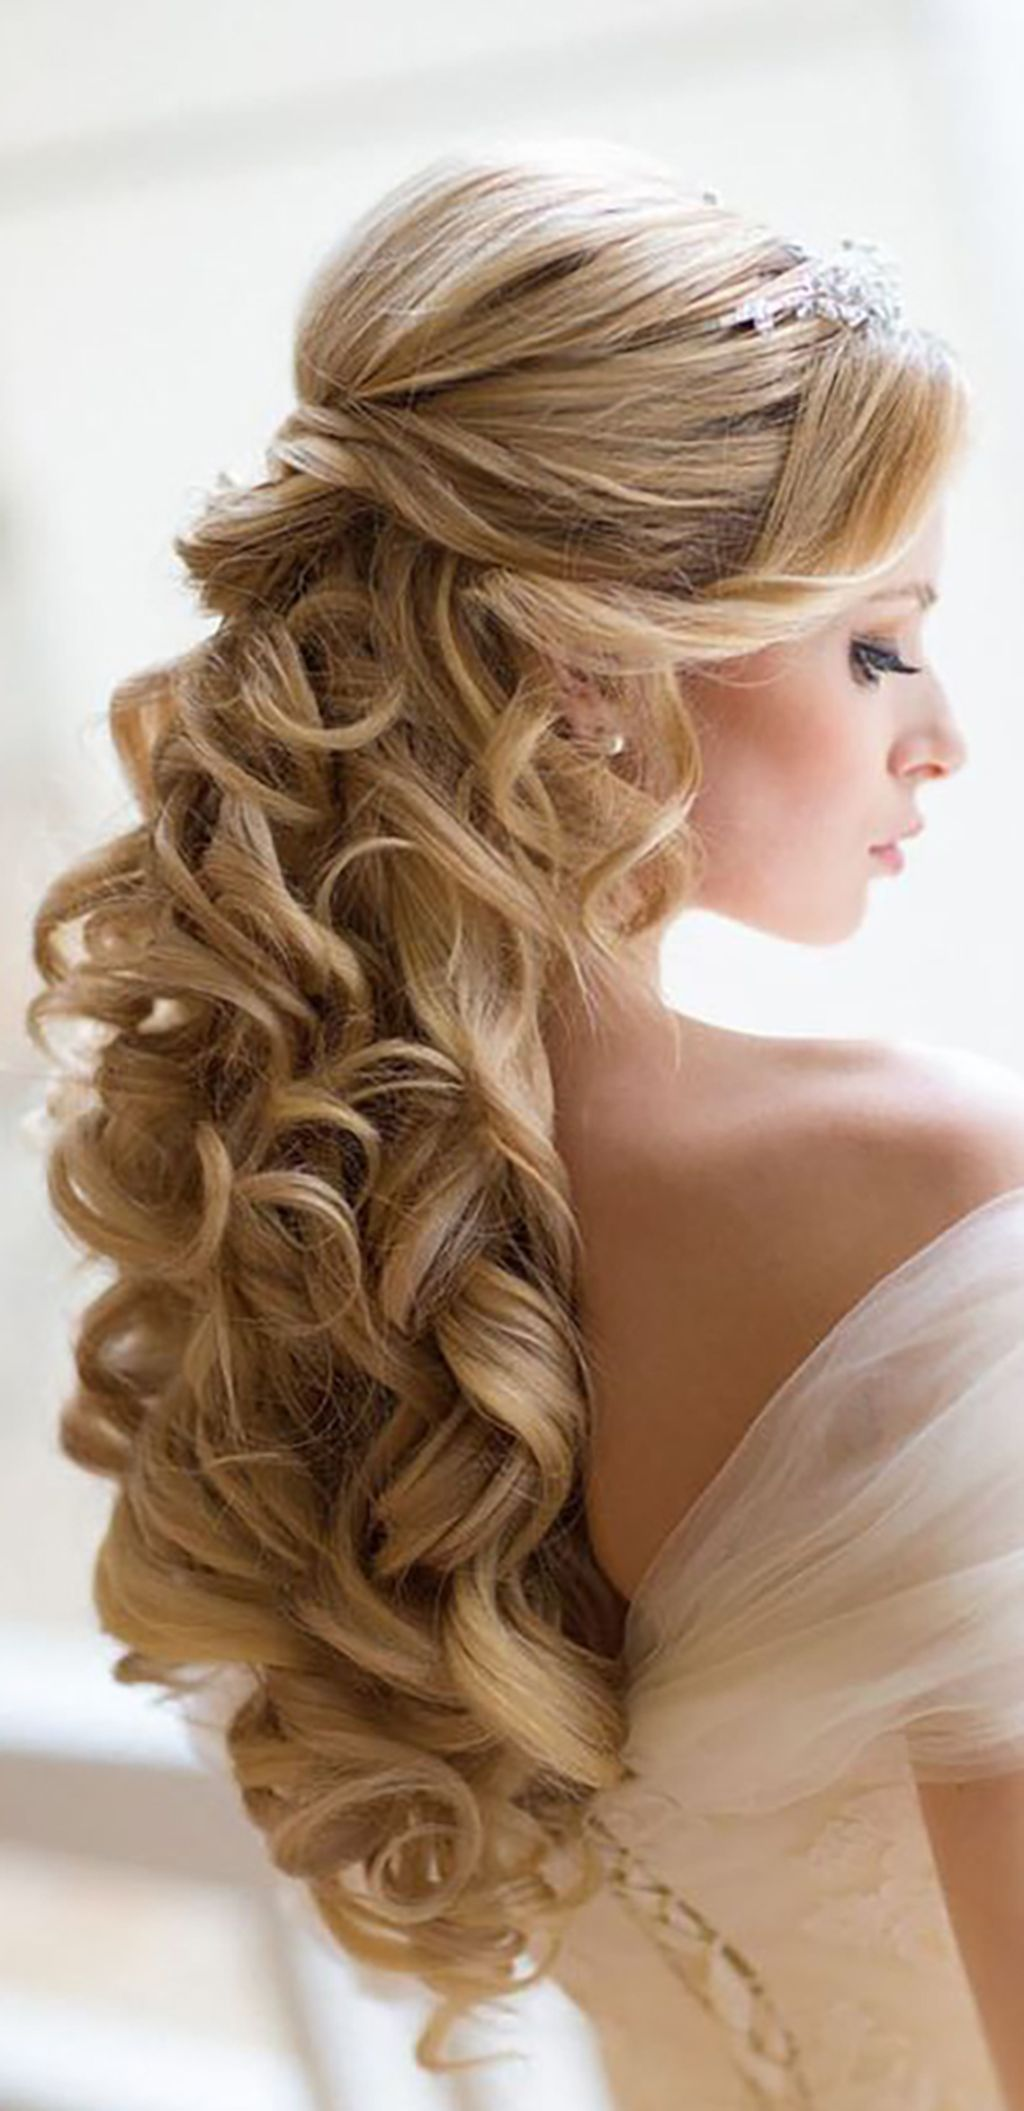 Pin By Simone Wogan On Wedding Hair Ideas Pinterest Classy